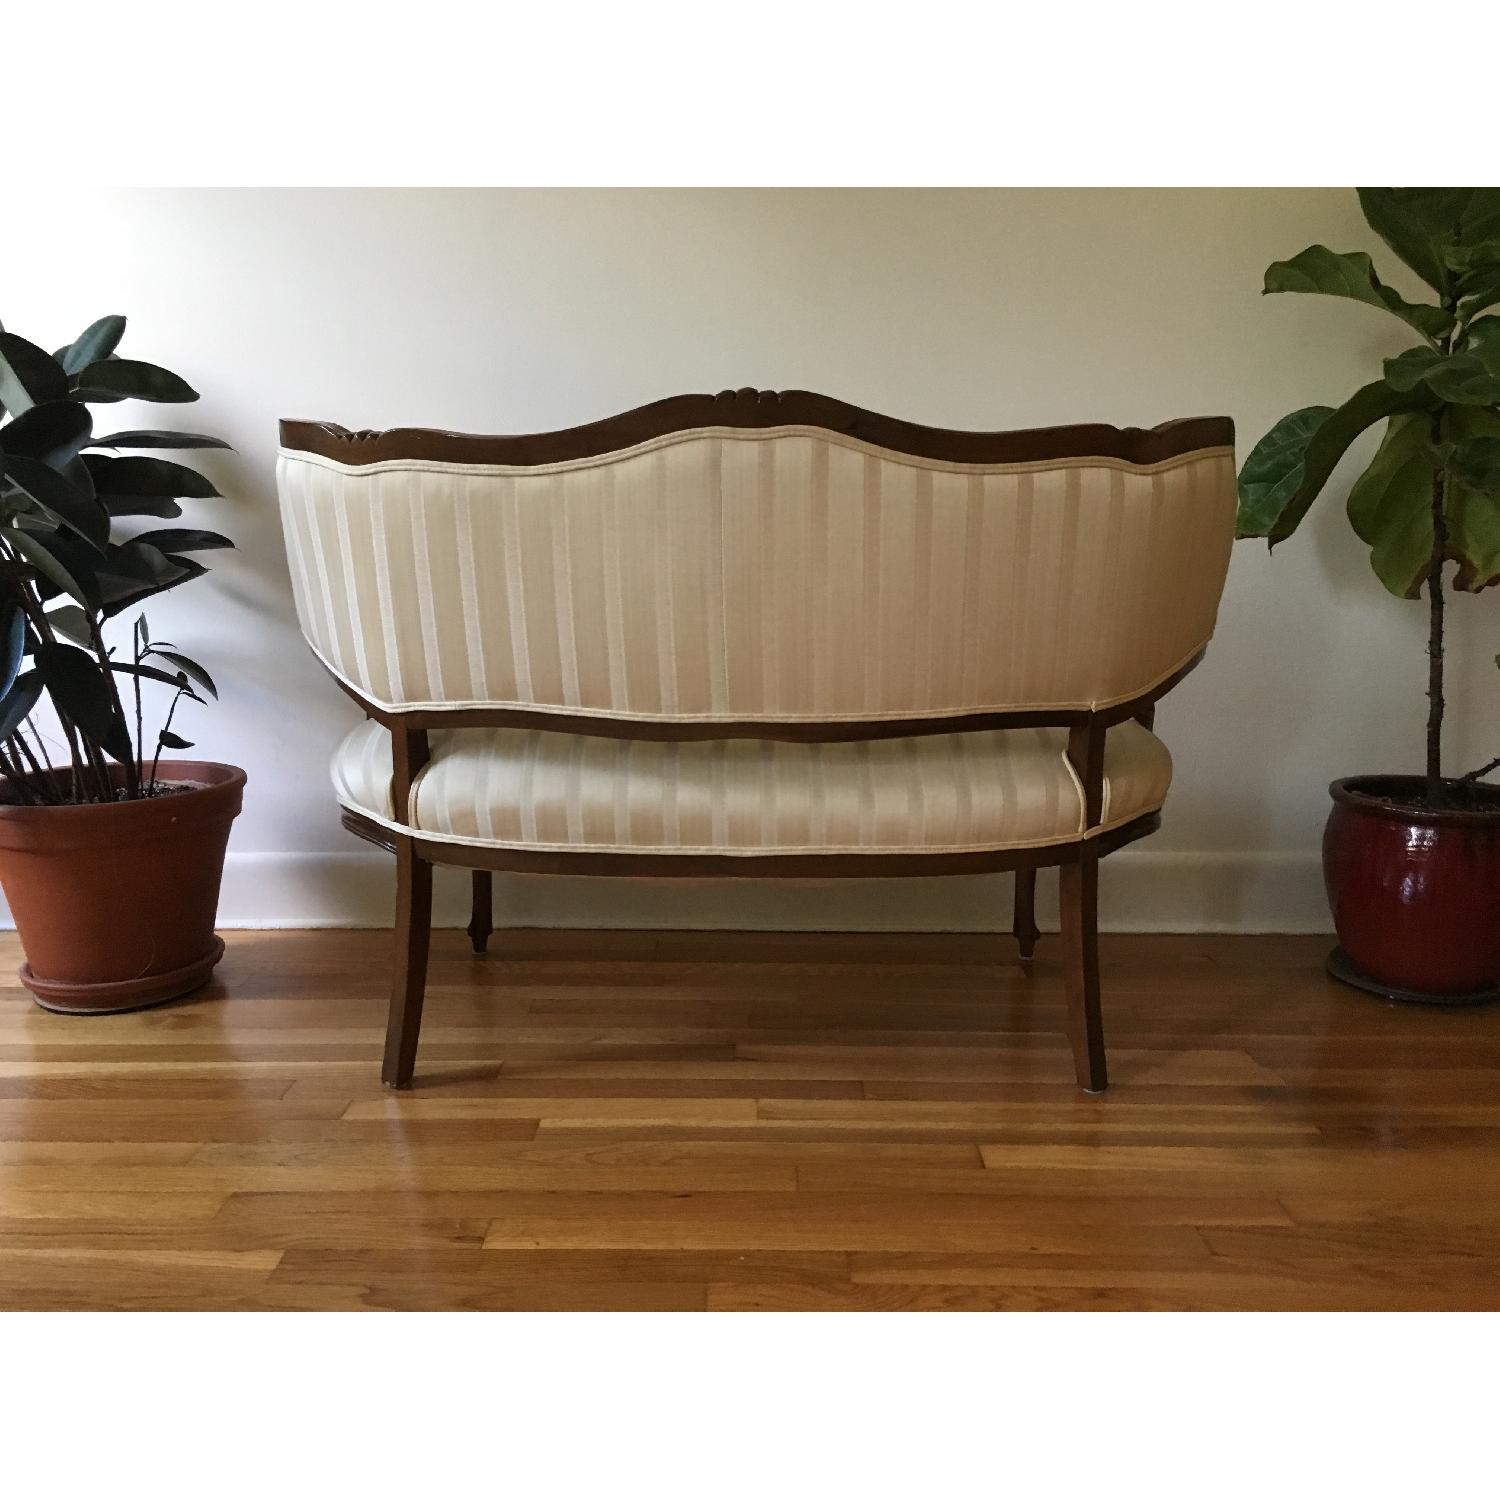 Vintage French-Style Loveseats - image-4